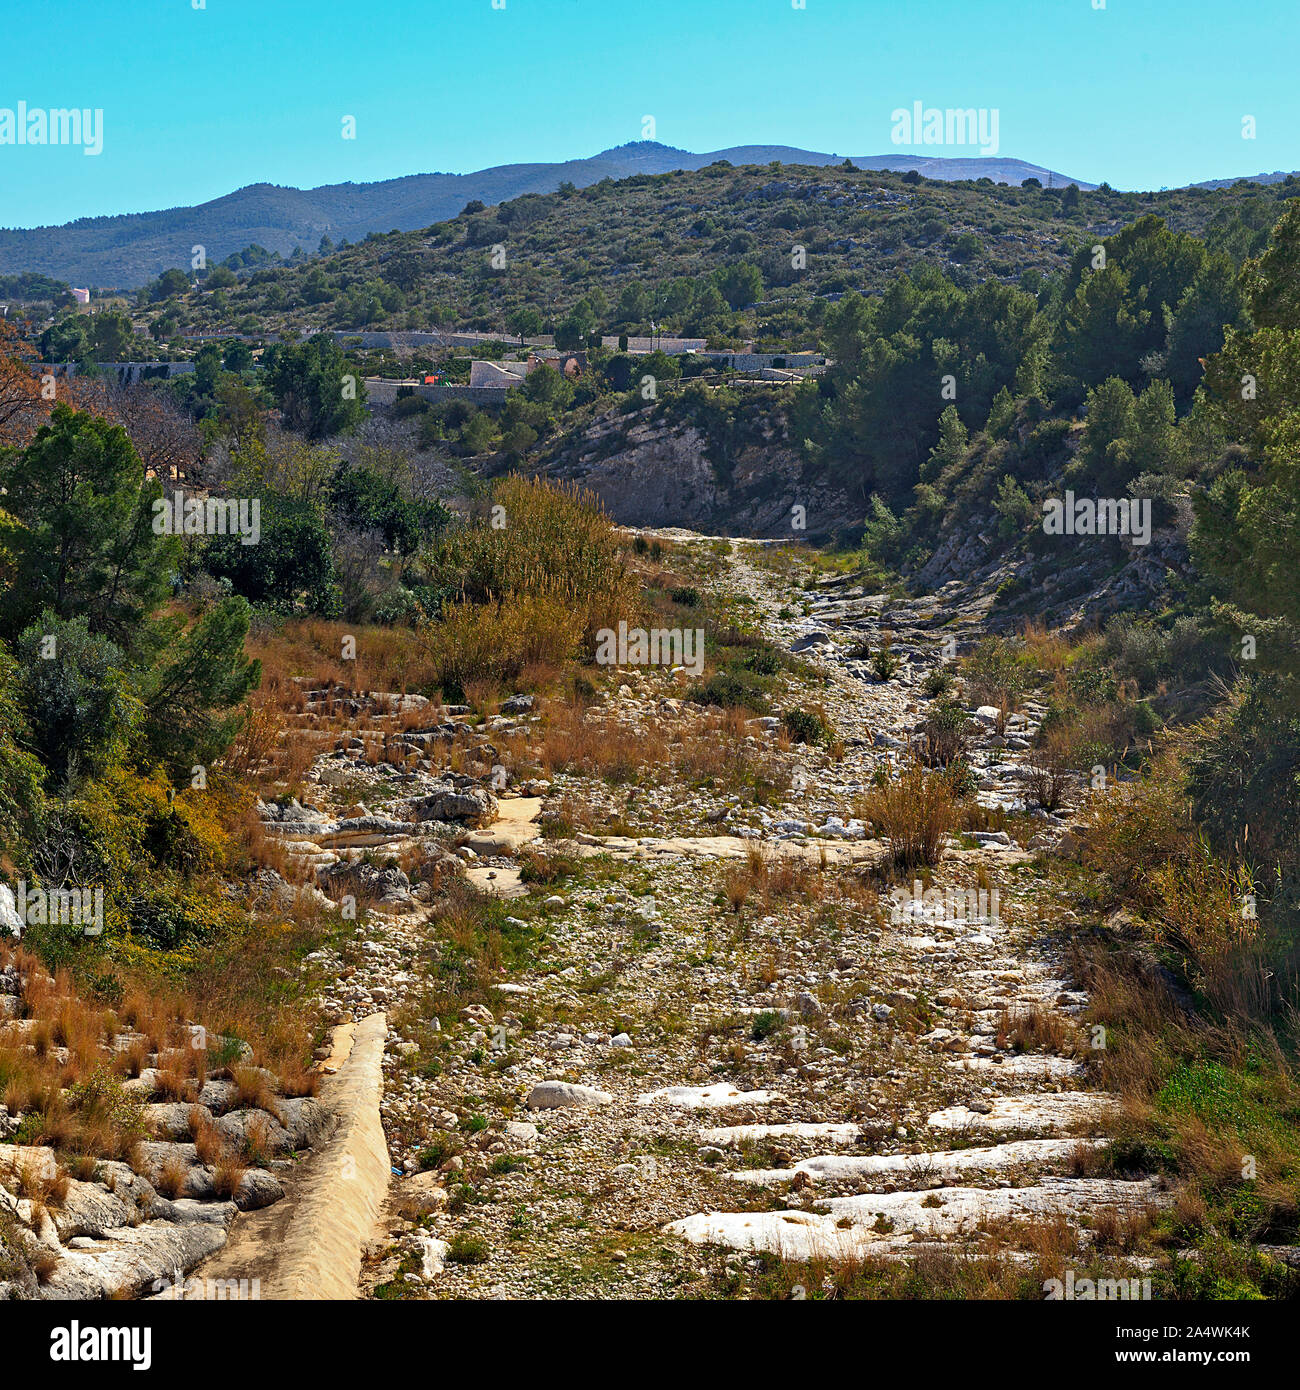 Dry River Bed in the gorge at Gata de Gorges in the Province of Alicante, Spain Stock Photo